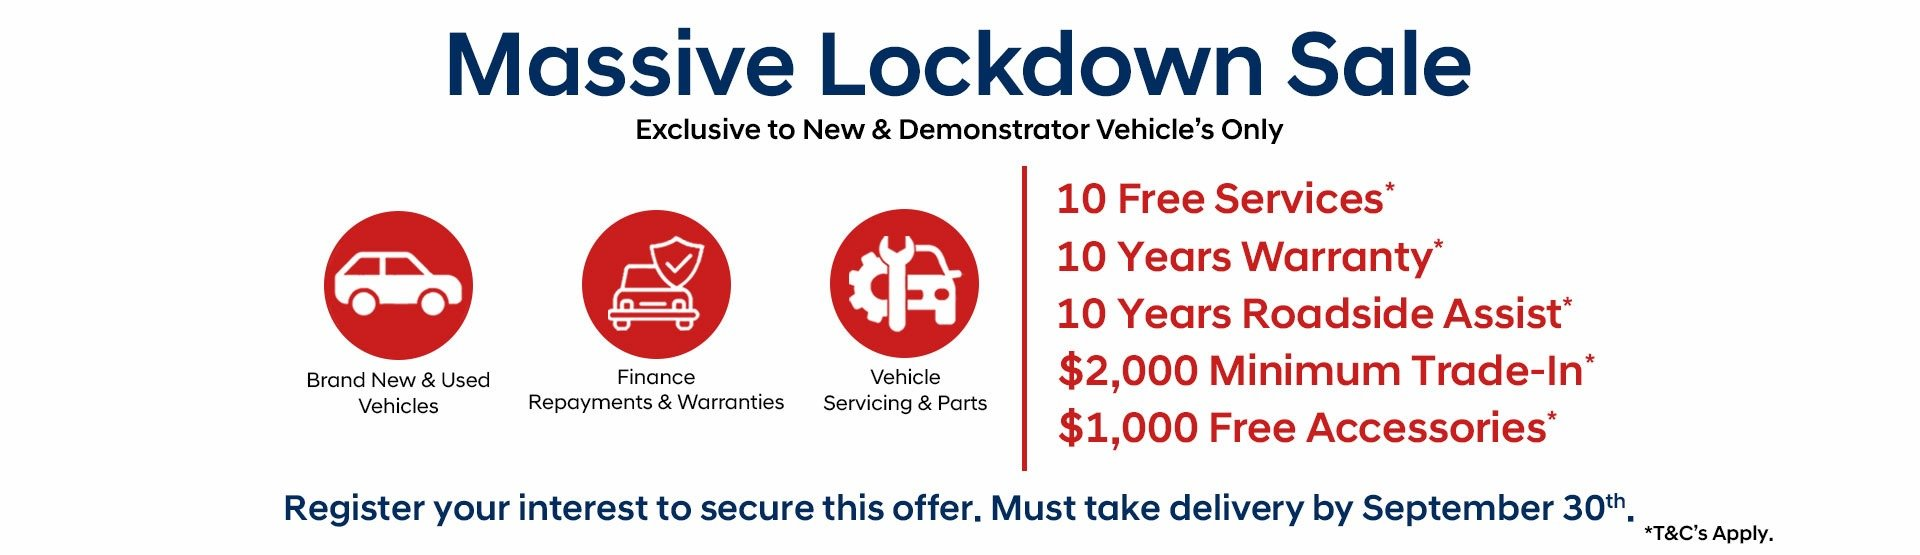 Dandenong Nissan - Massive Lockdown Sale